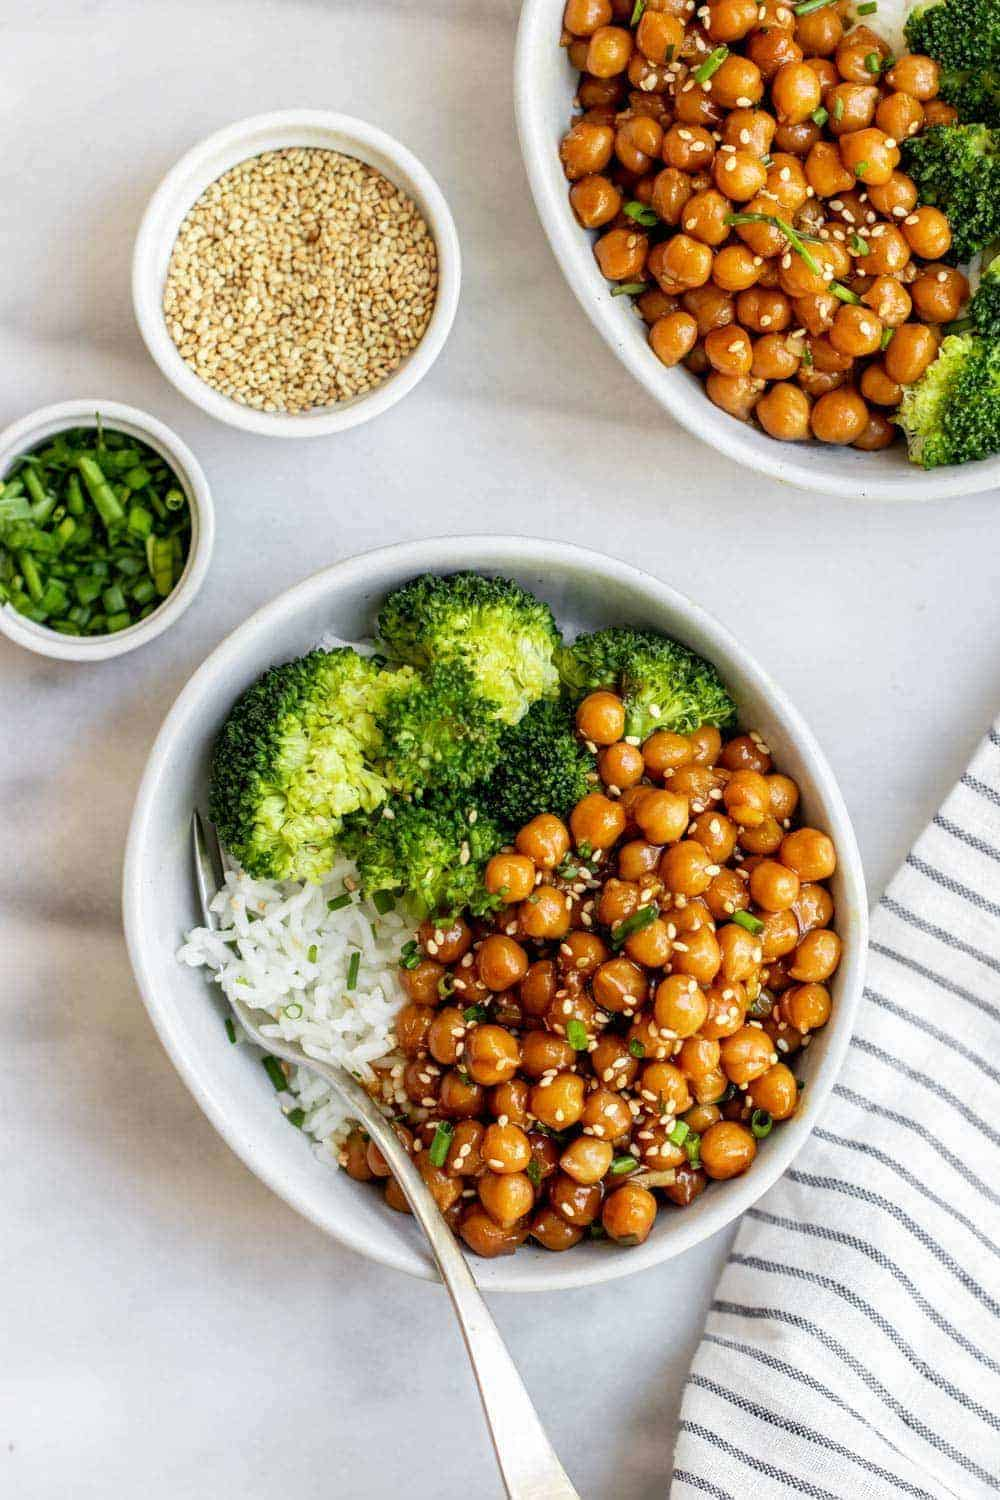 Sticky sesame chickpea recipe with rice and broccoli in a small bowl.